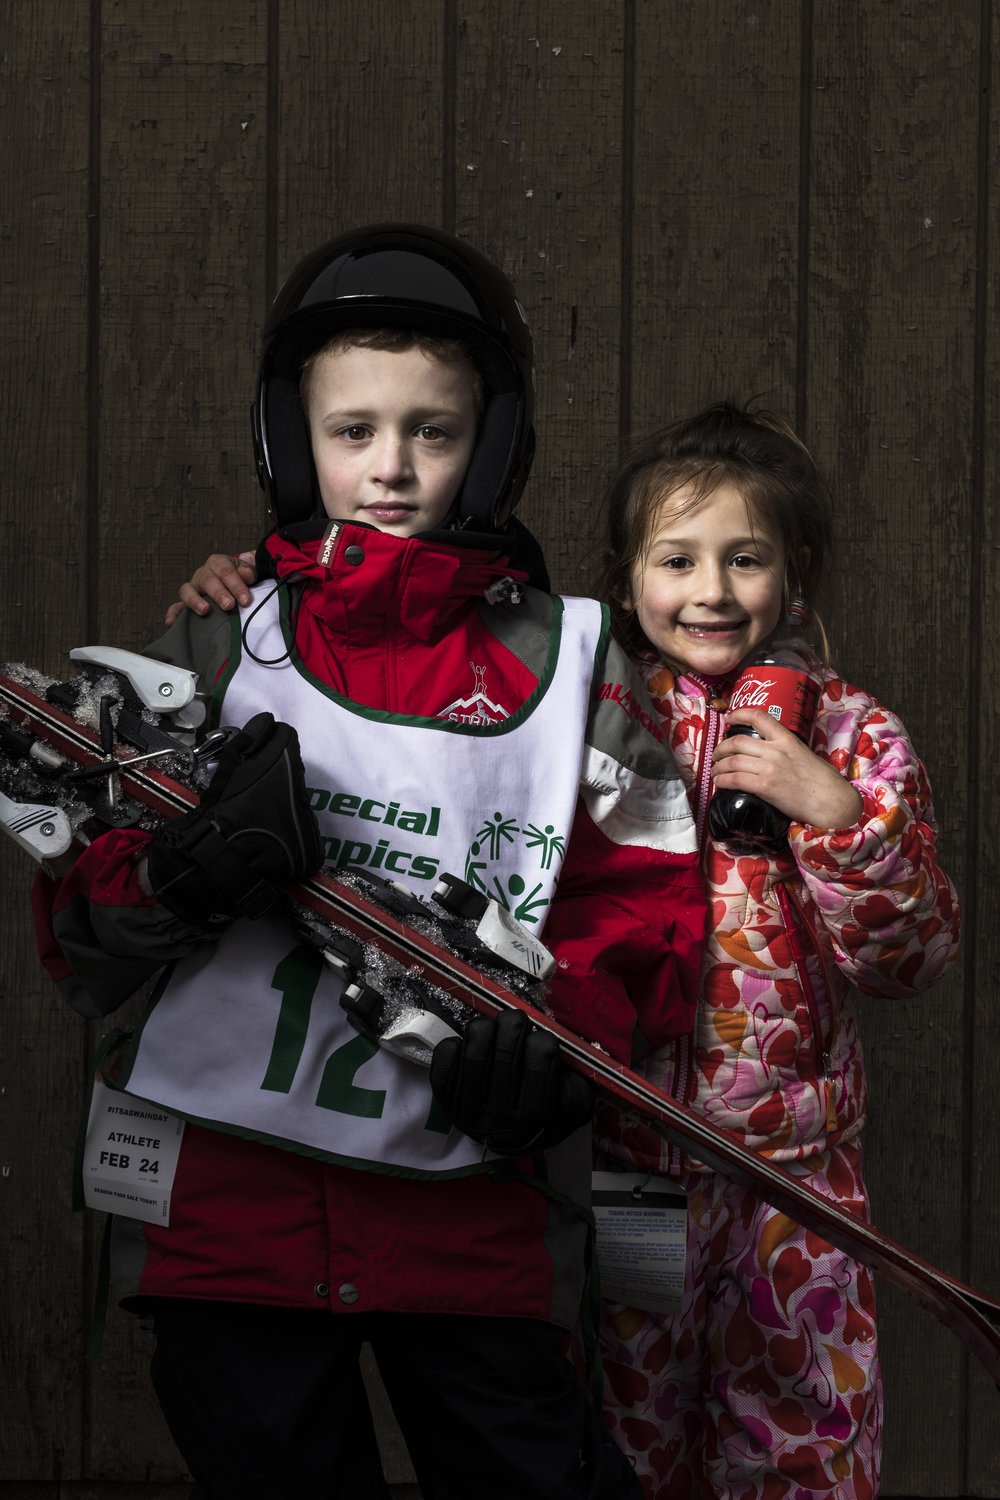 Alpine skier Matthew, and his sister Ally, from Bronxville, N.Y., at the 2018 Special Olympics New York State Winter Games at Swain Resort in Swain, N.Y. Feb. 24, 2018.  A. Crichton